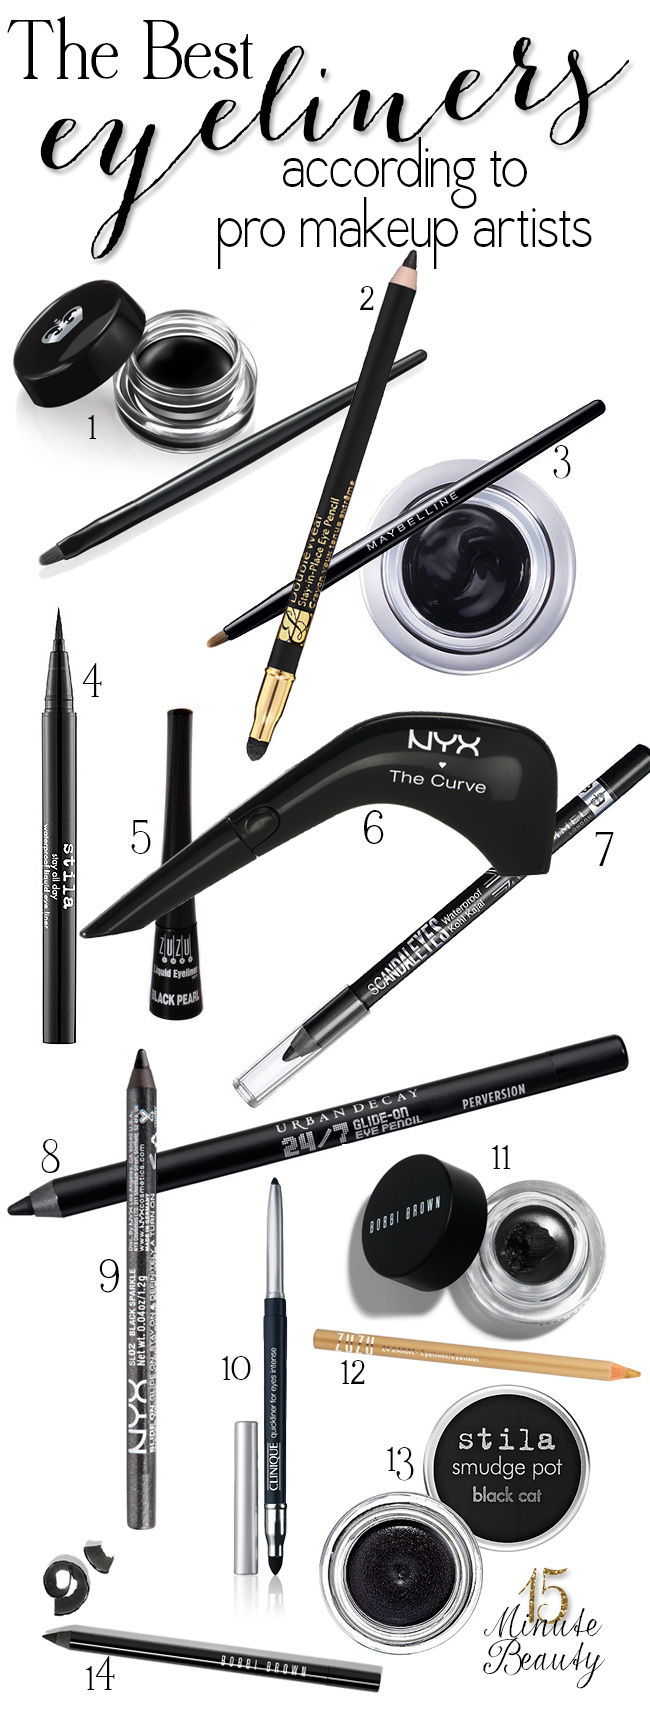 15 Minute Beauty - The Best Eyeliners According to Makeup Artists